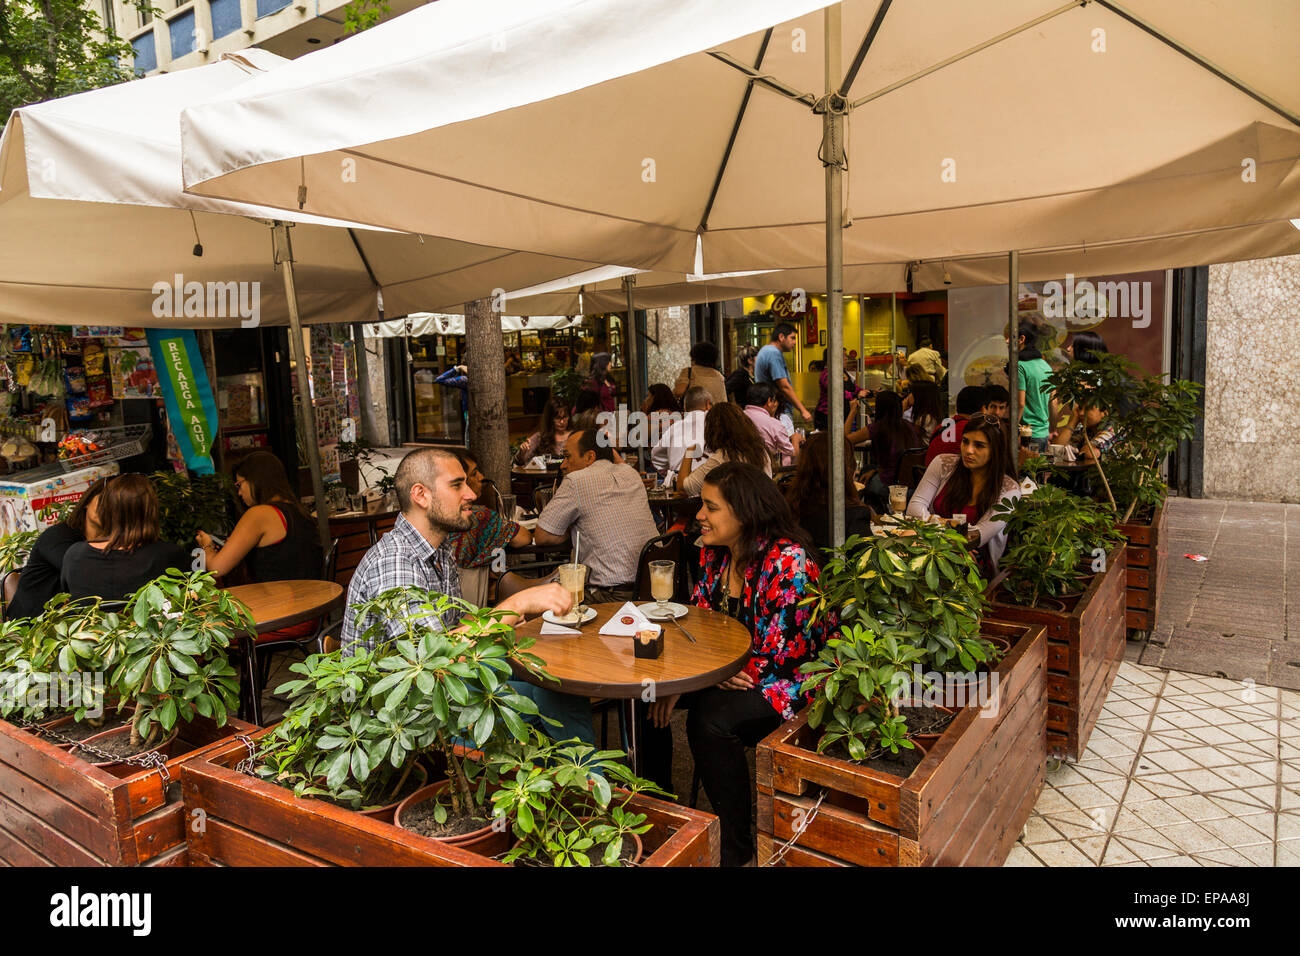 patrons at sidewalk cafe, downtown Santiago, Chile - Stock Image